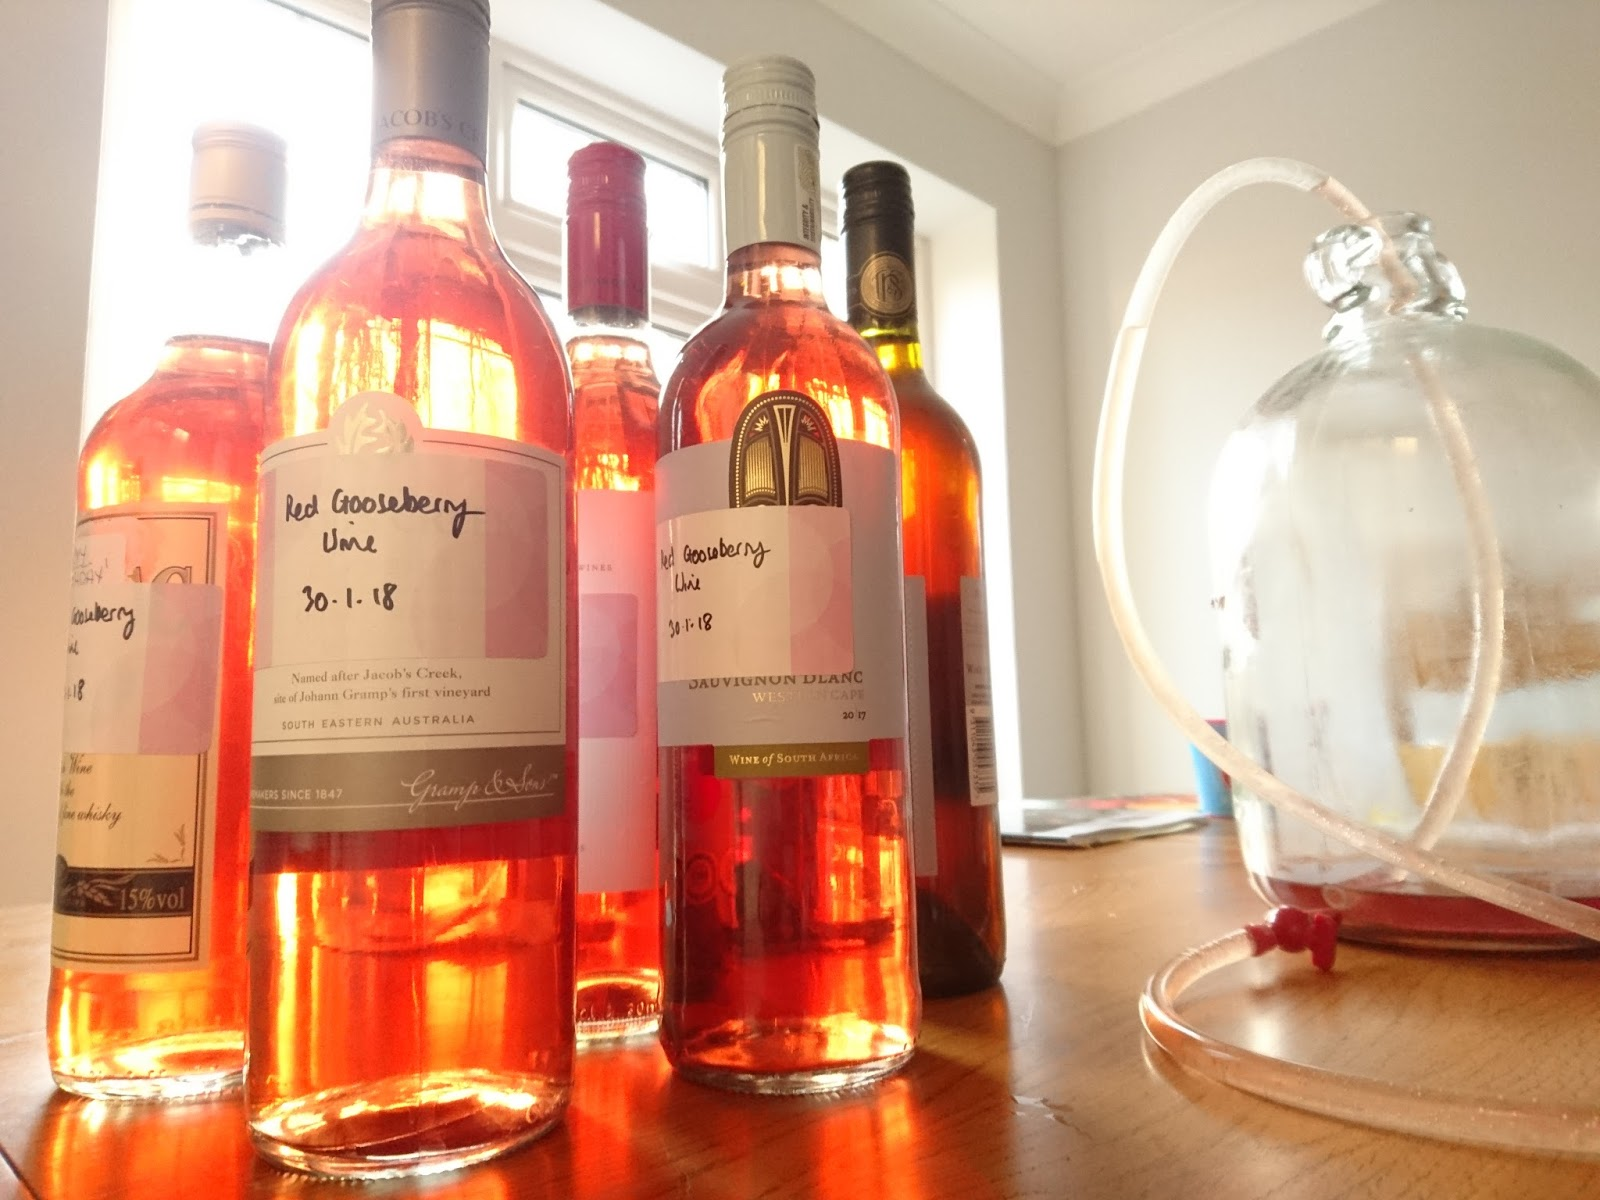 Homemade wine - please yourself, surprise guests 64